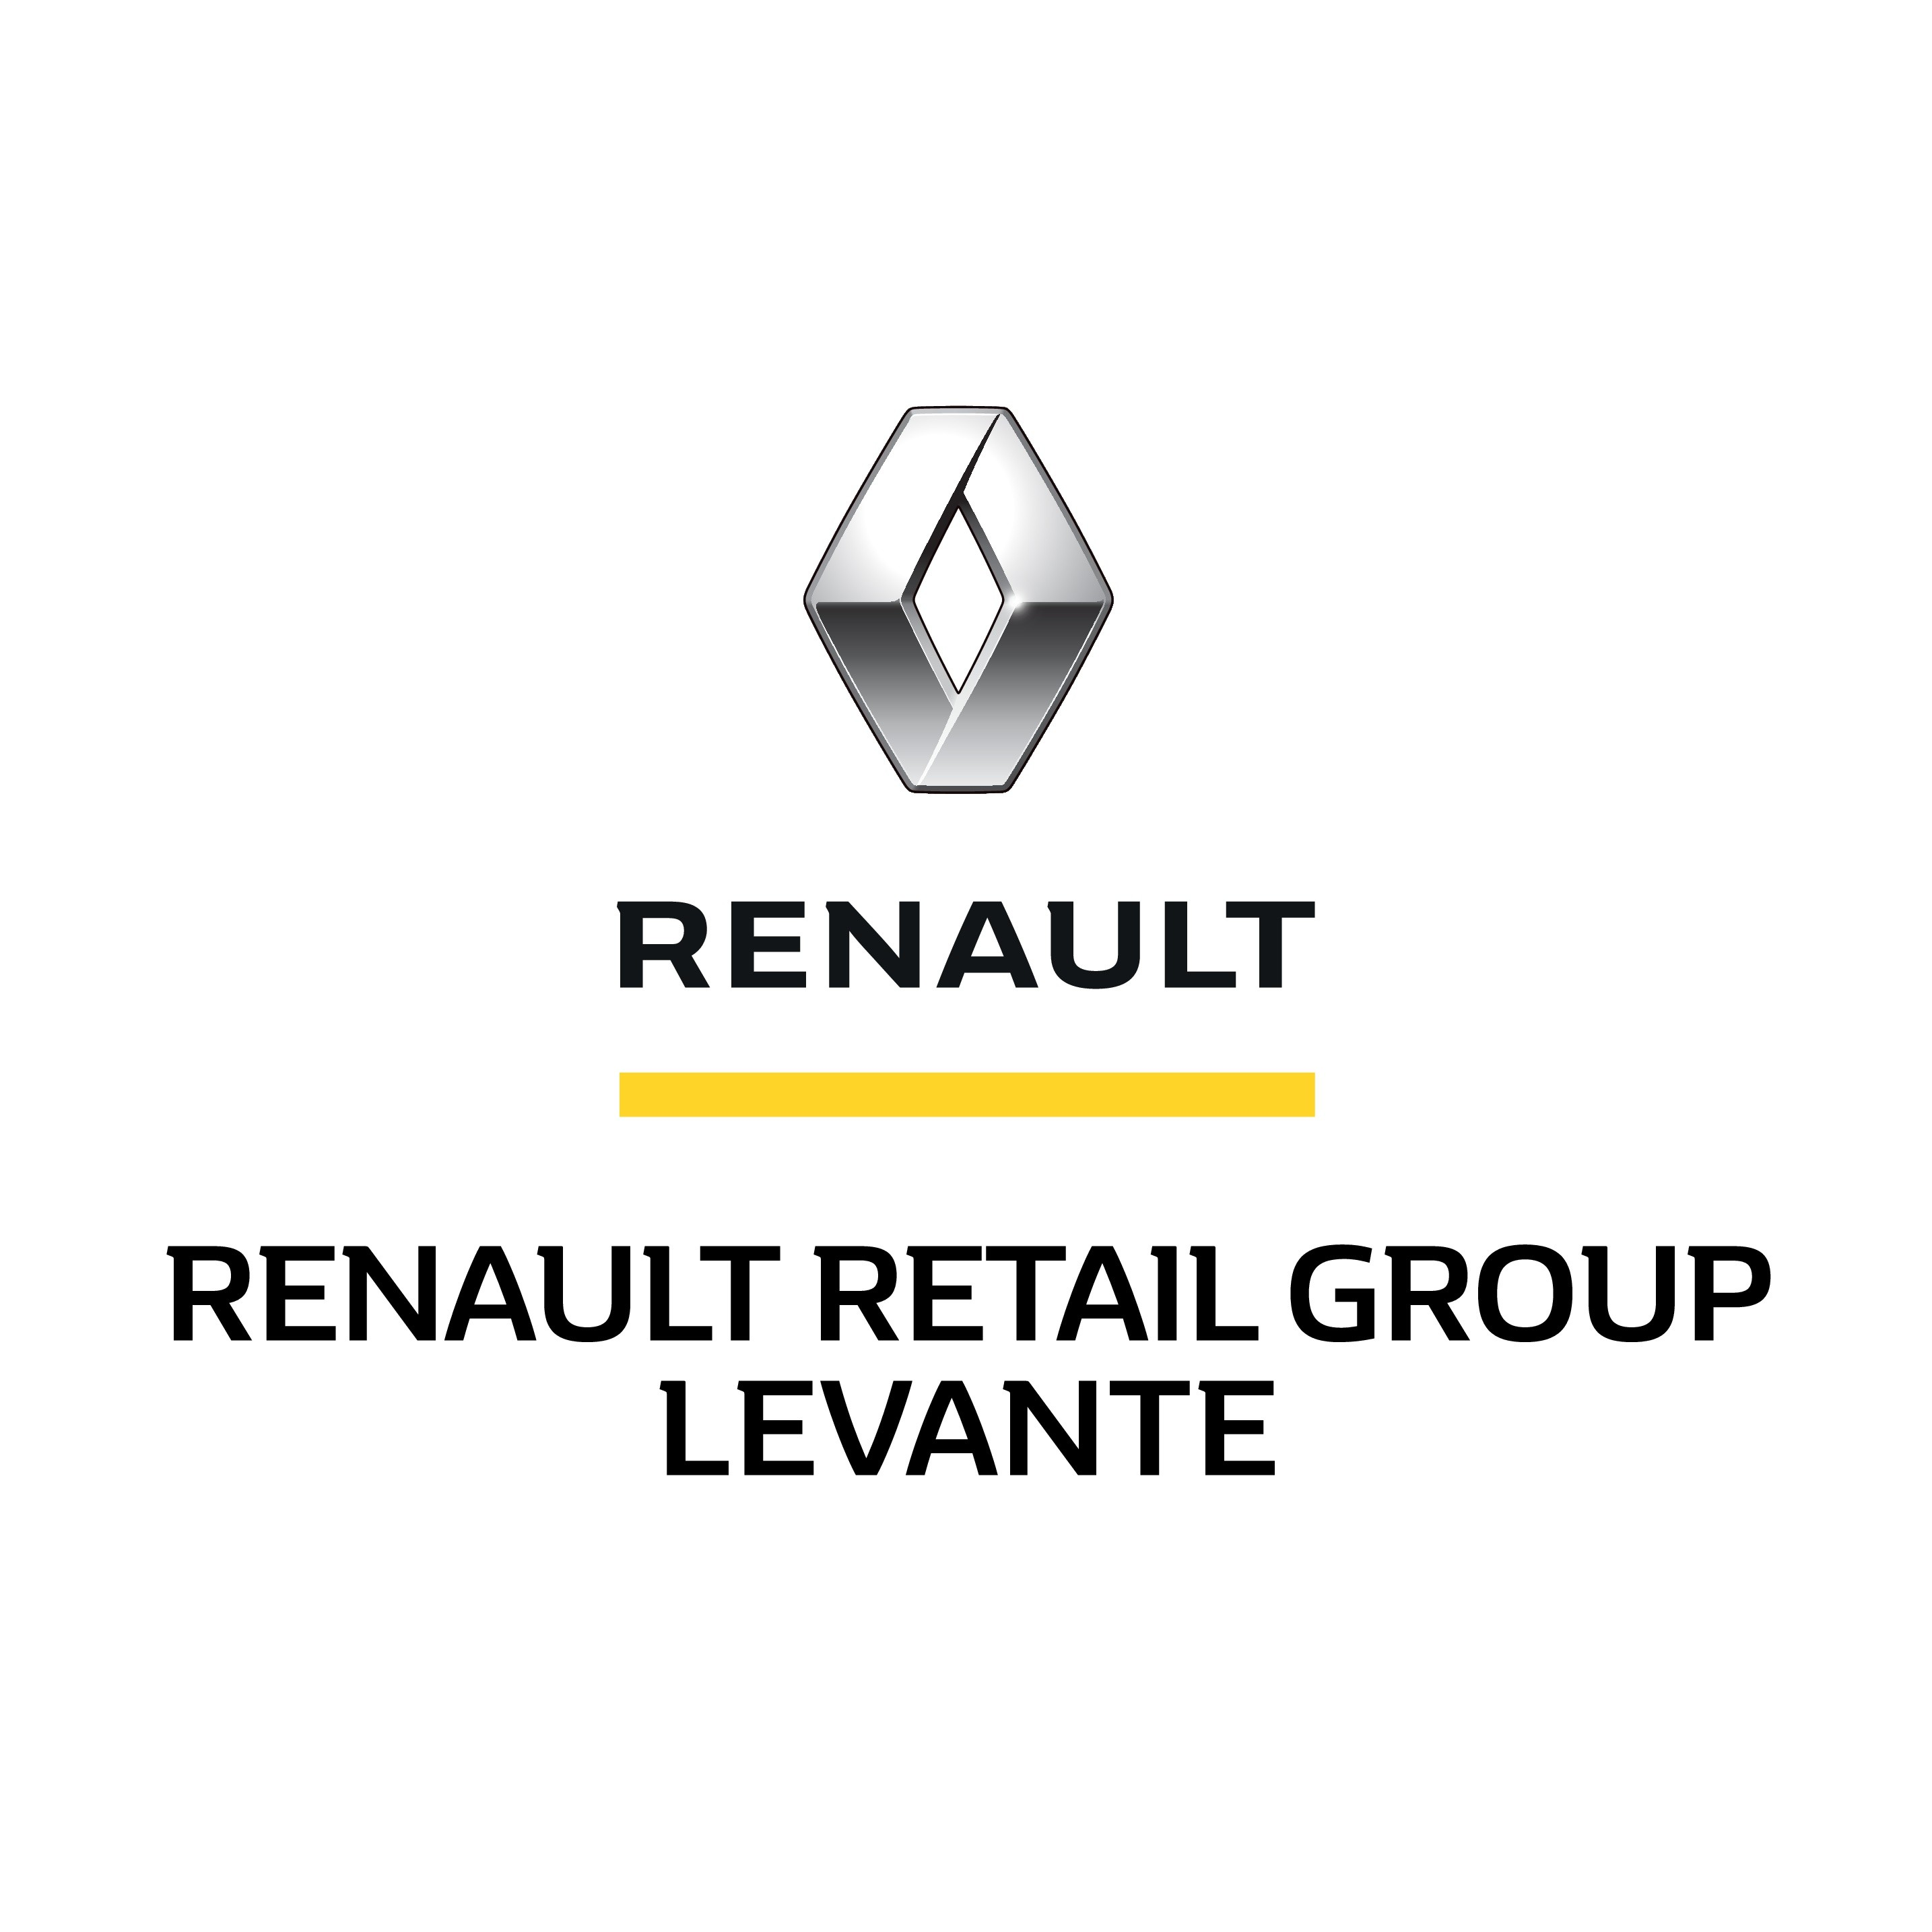 Renault Retail Group Levante